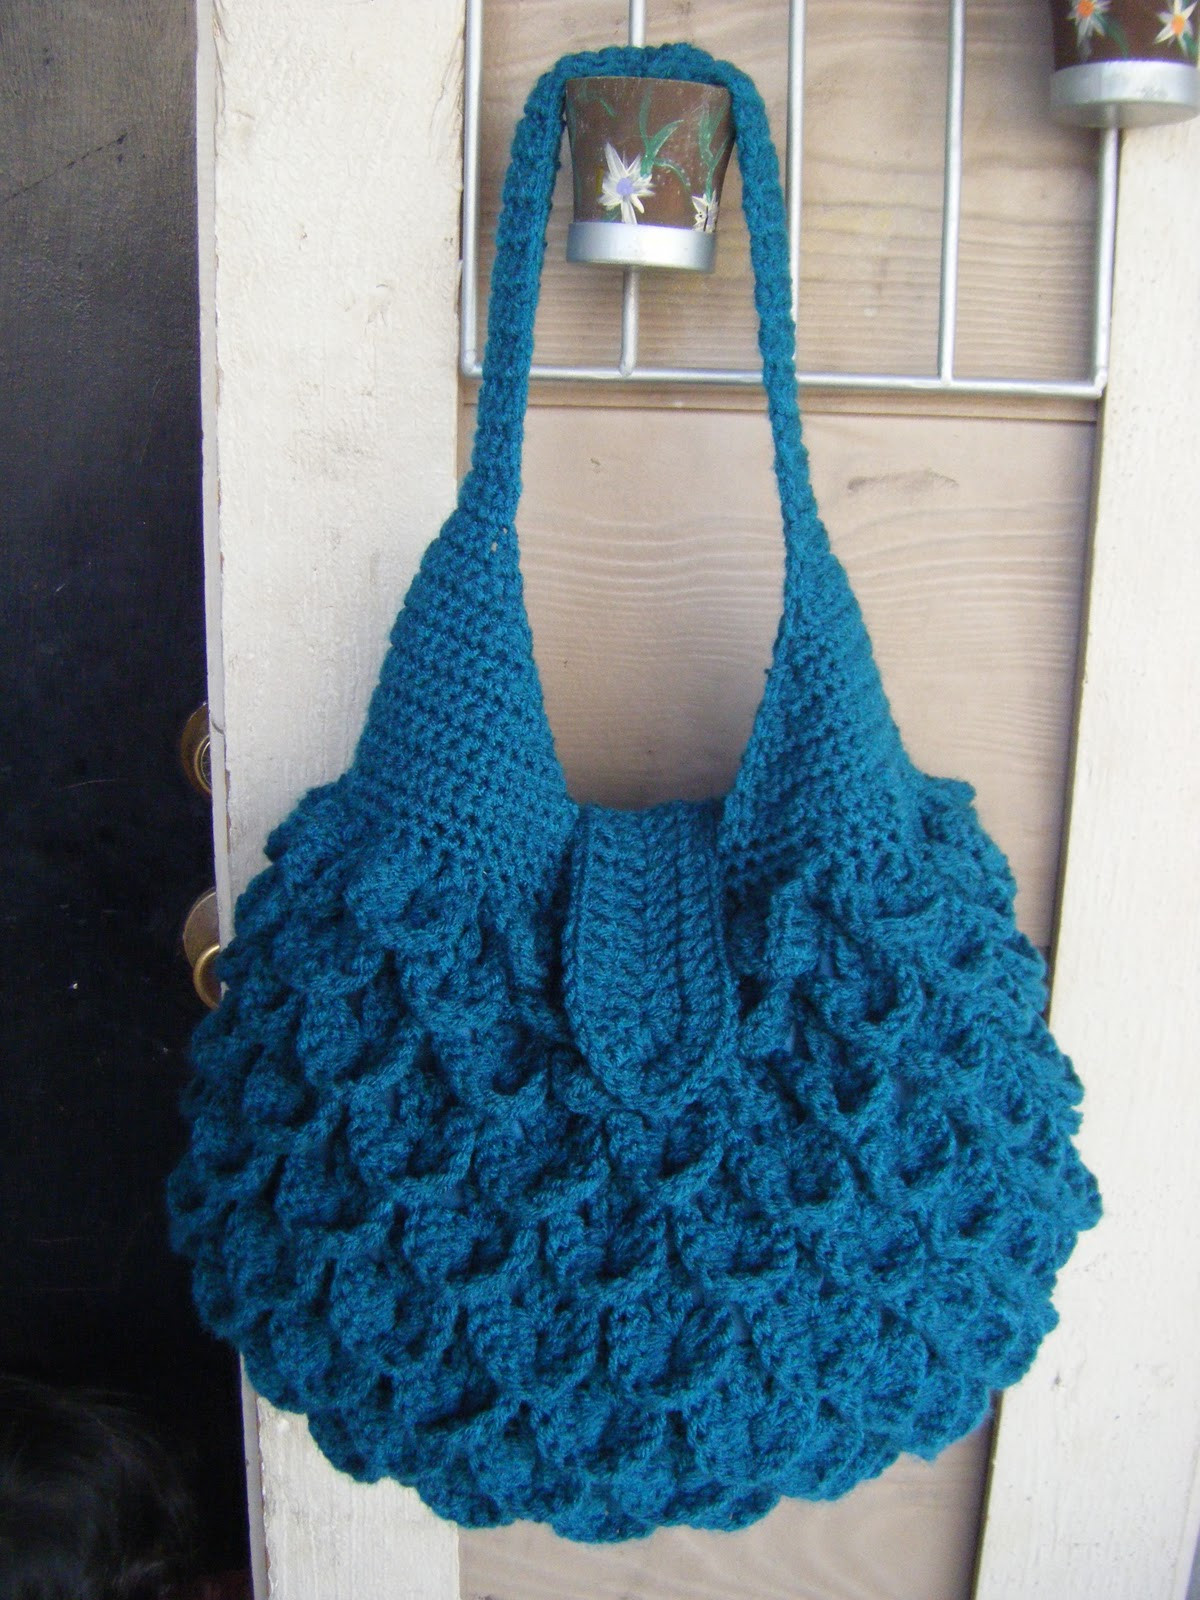 Crochet Bag Luxury Crochet Free Handbag Pattern – Crochet Club Of Innovative 49 Models Crochet Bag